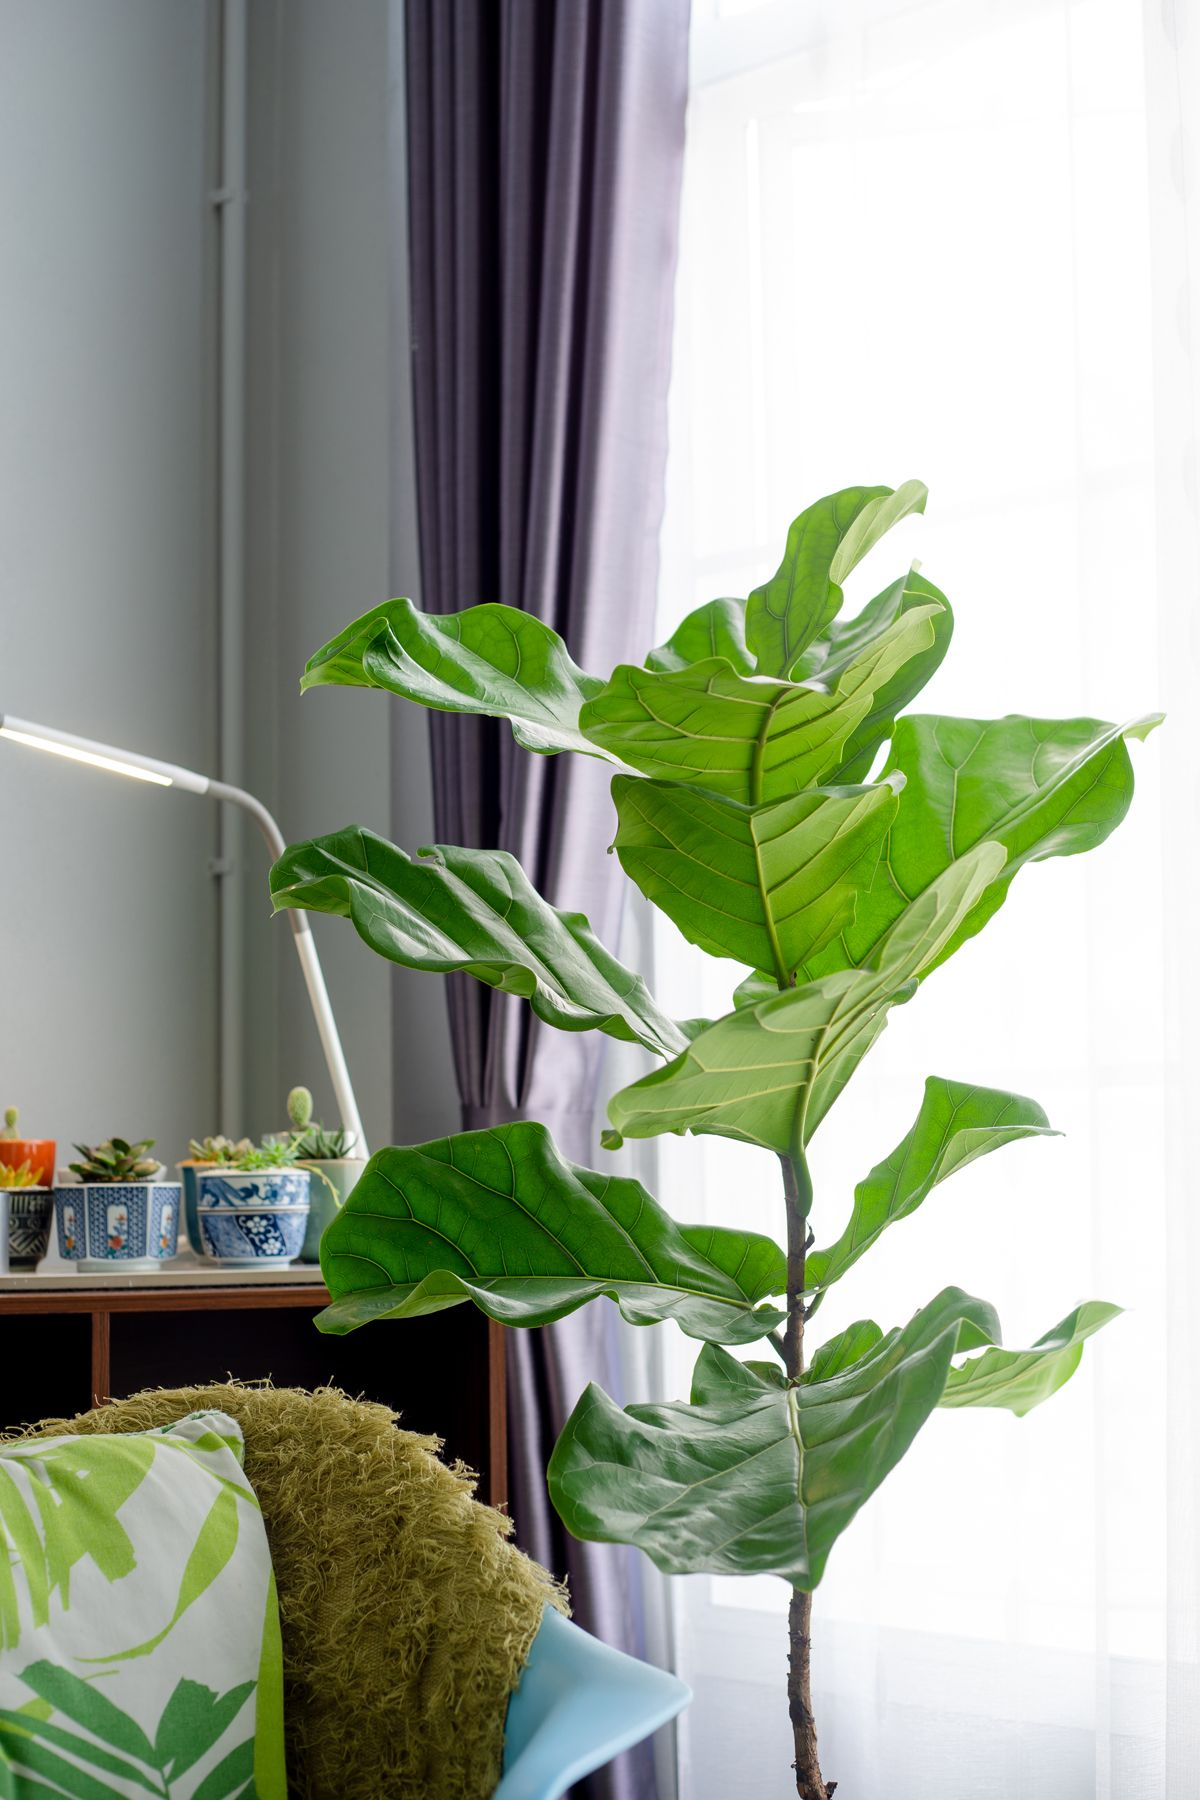 Fiddle leaf fig tree in the living room.